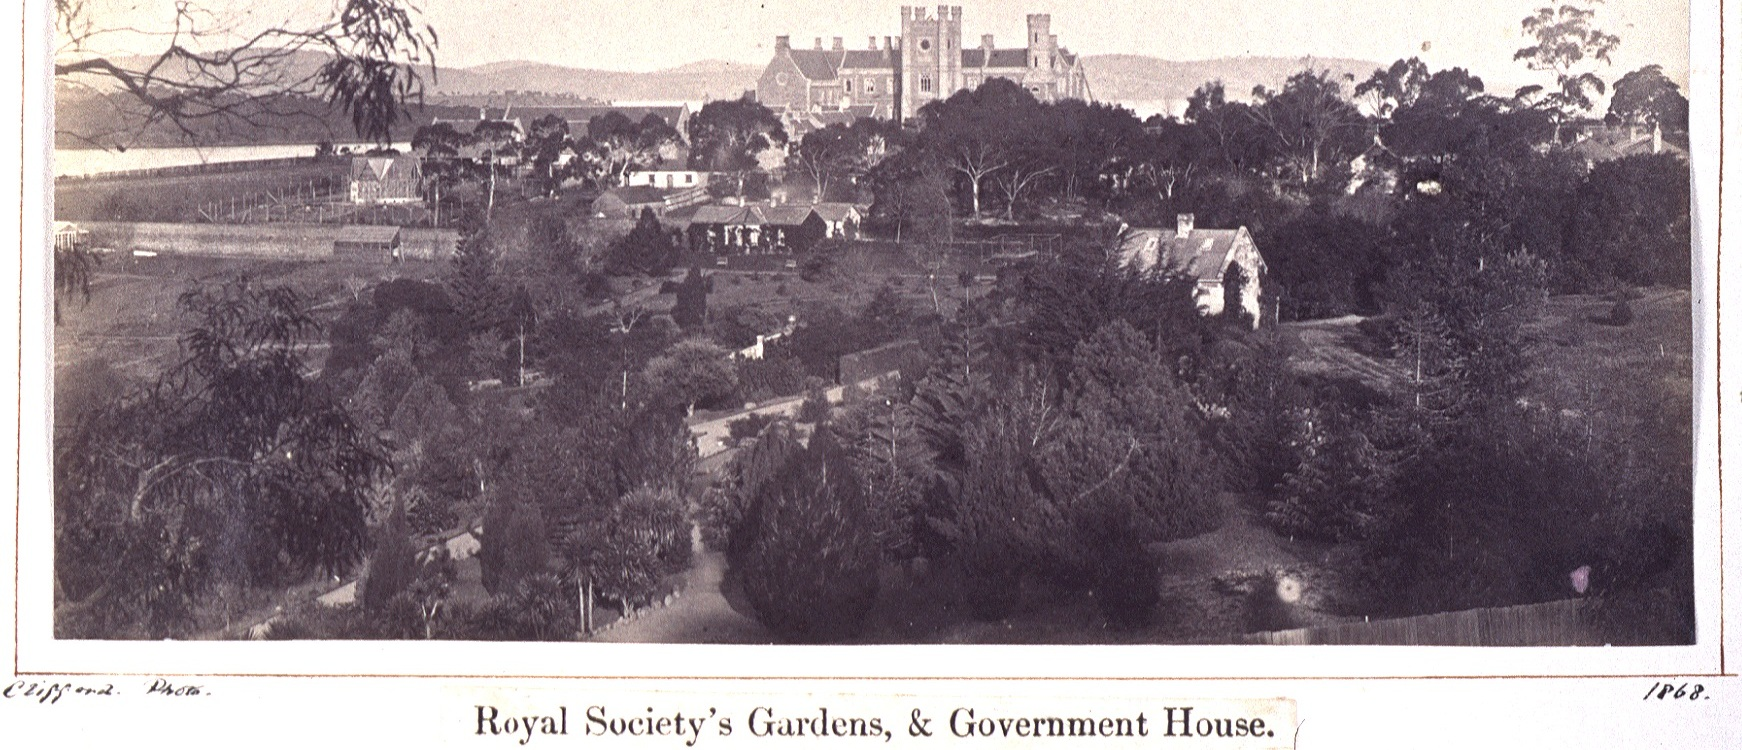 black and white image of Royal Society's Gardens, and Government House from upper domain mid 1800's